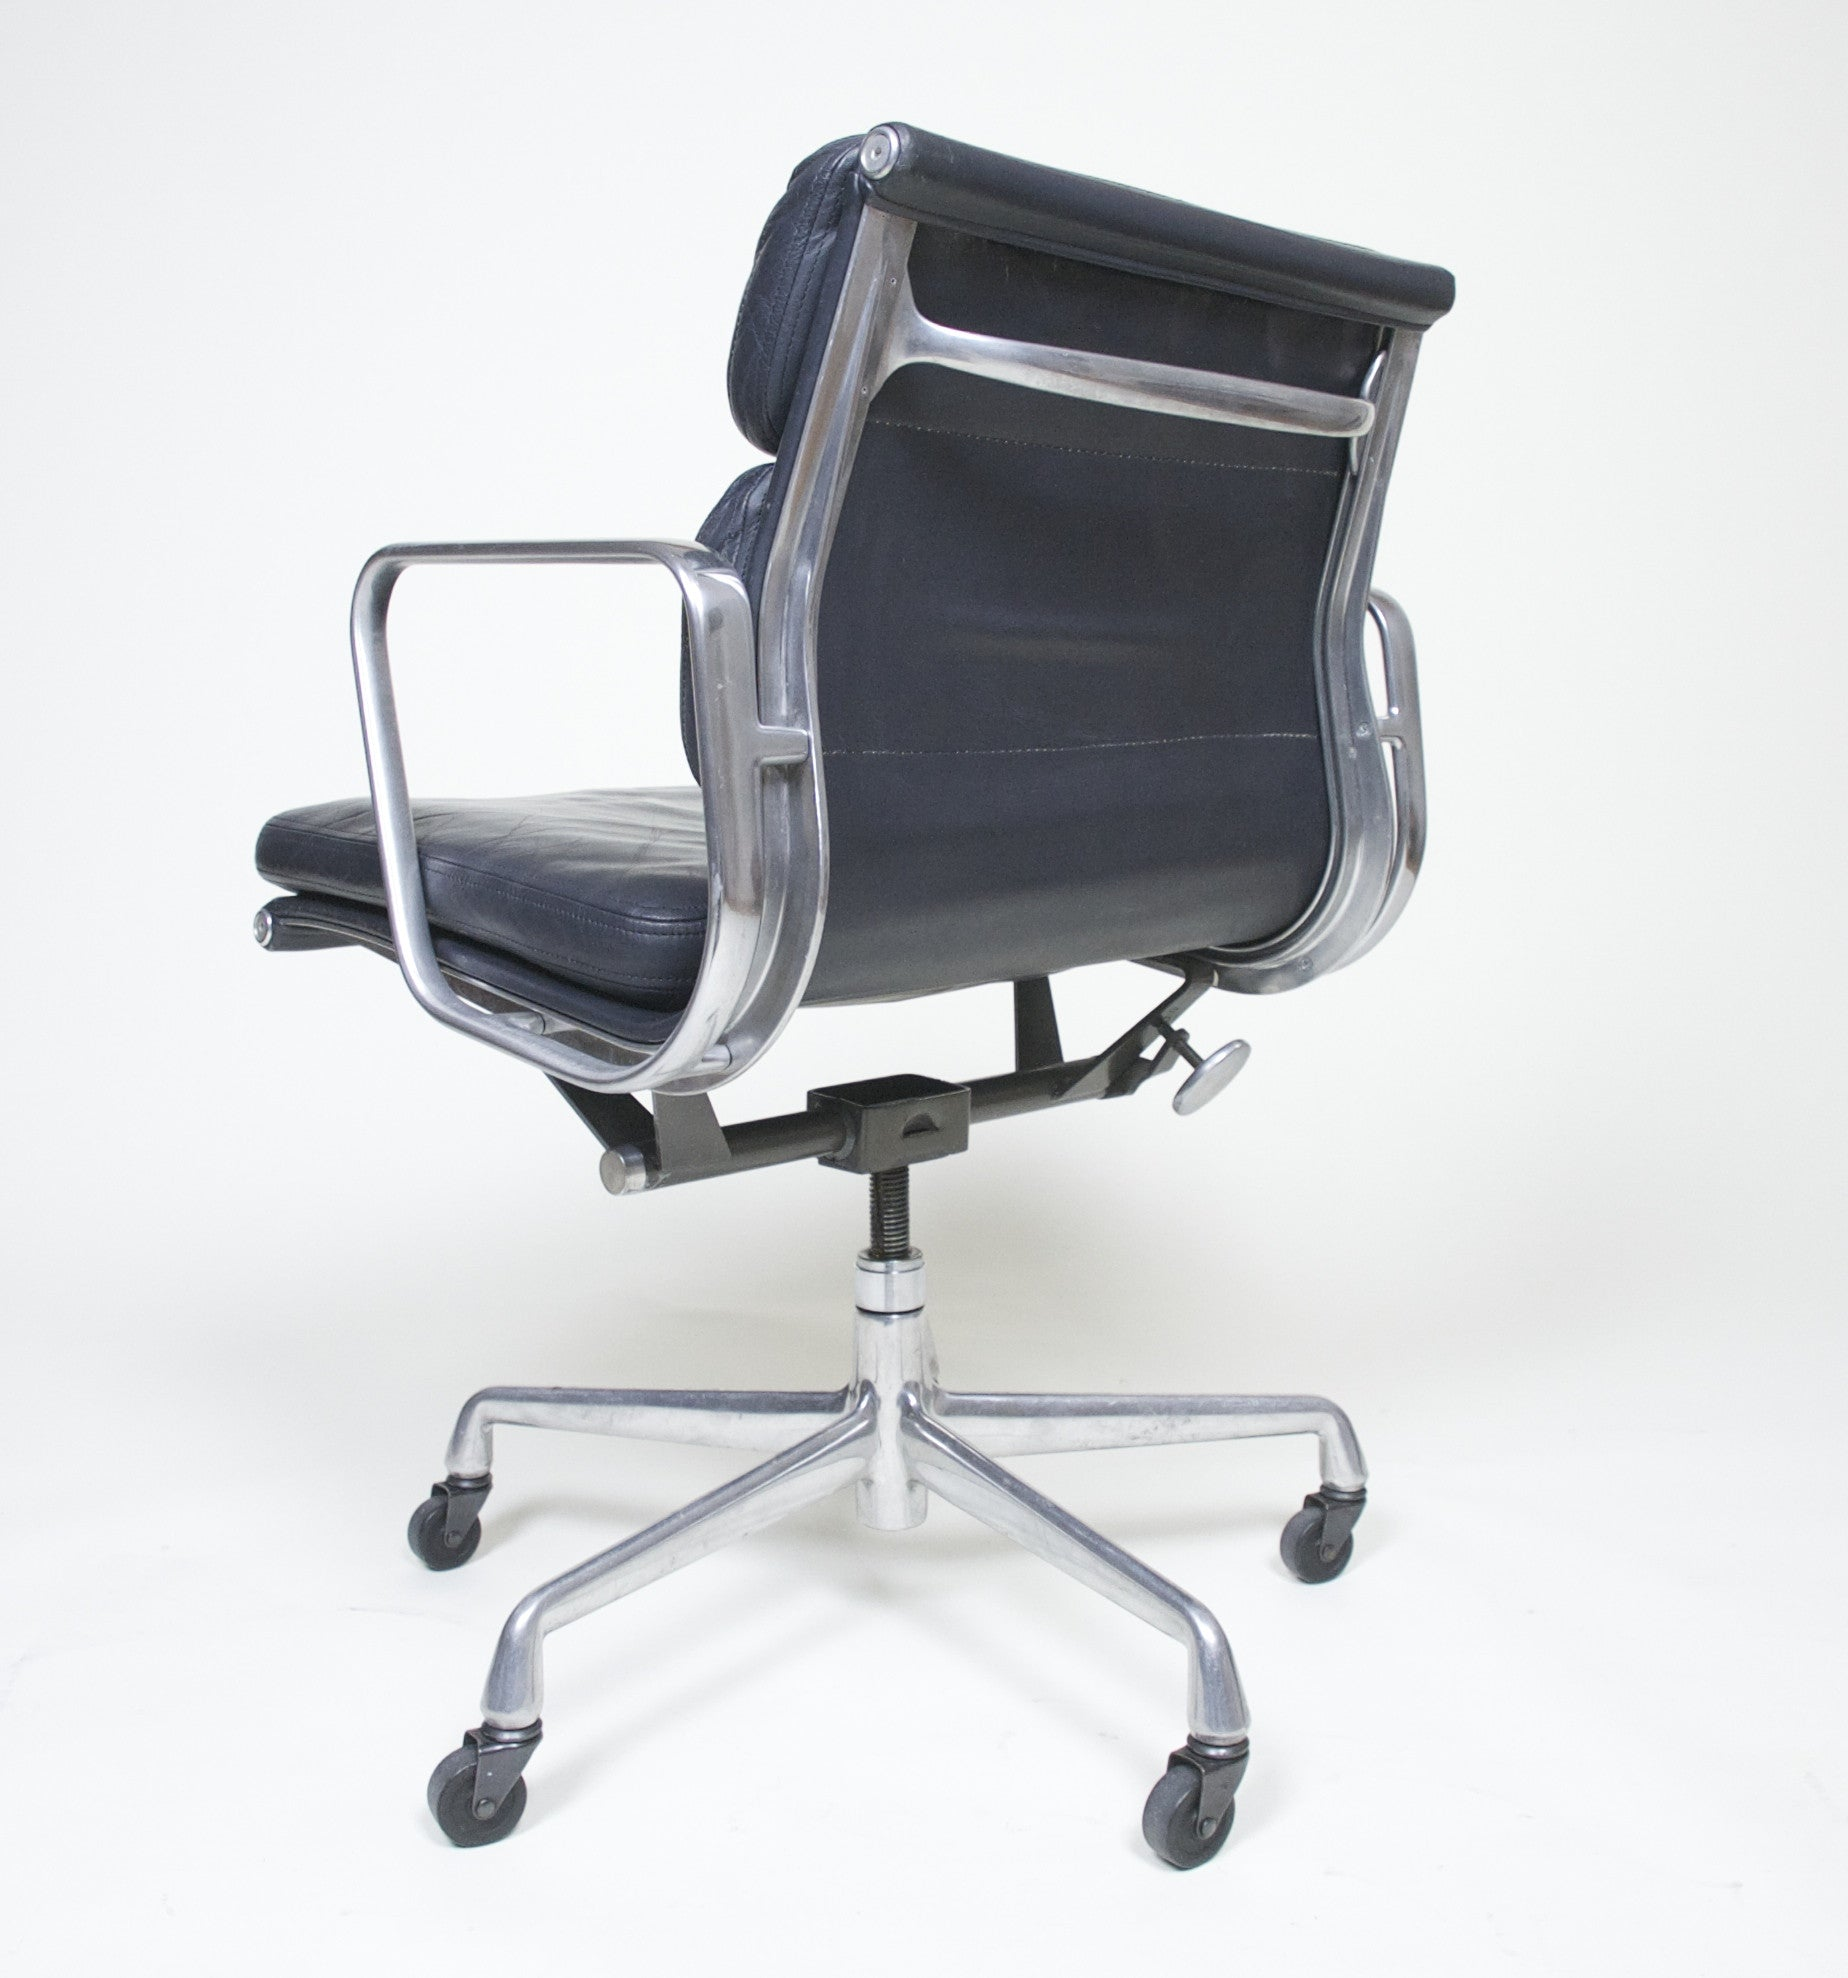 SOLD Eames Herman Miller Soft Pad Aluminum Group Chair Dark Gray Leather 7 Available